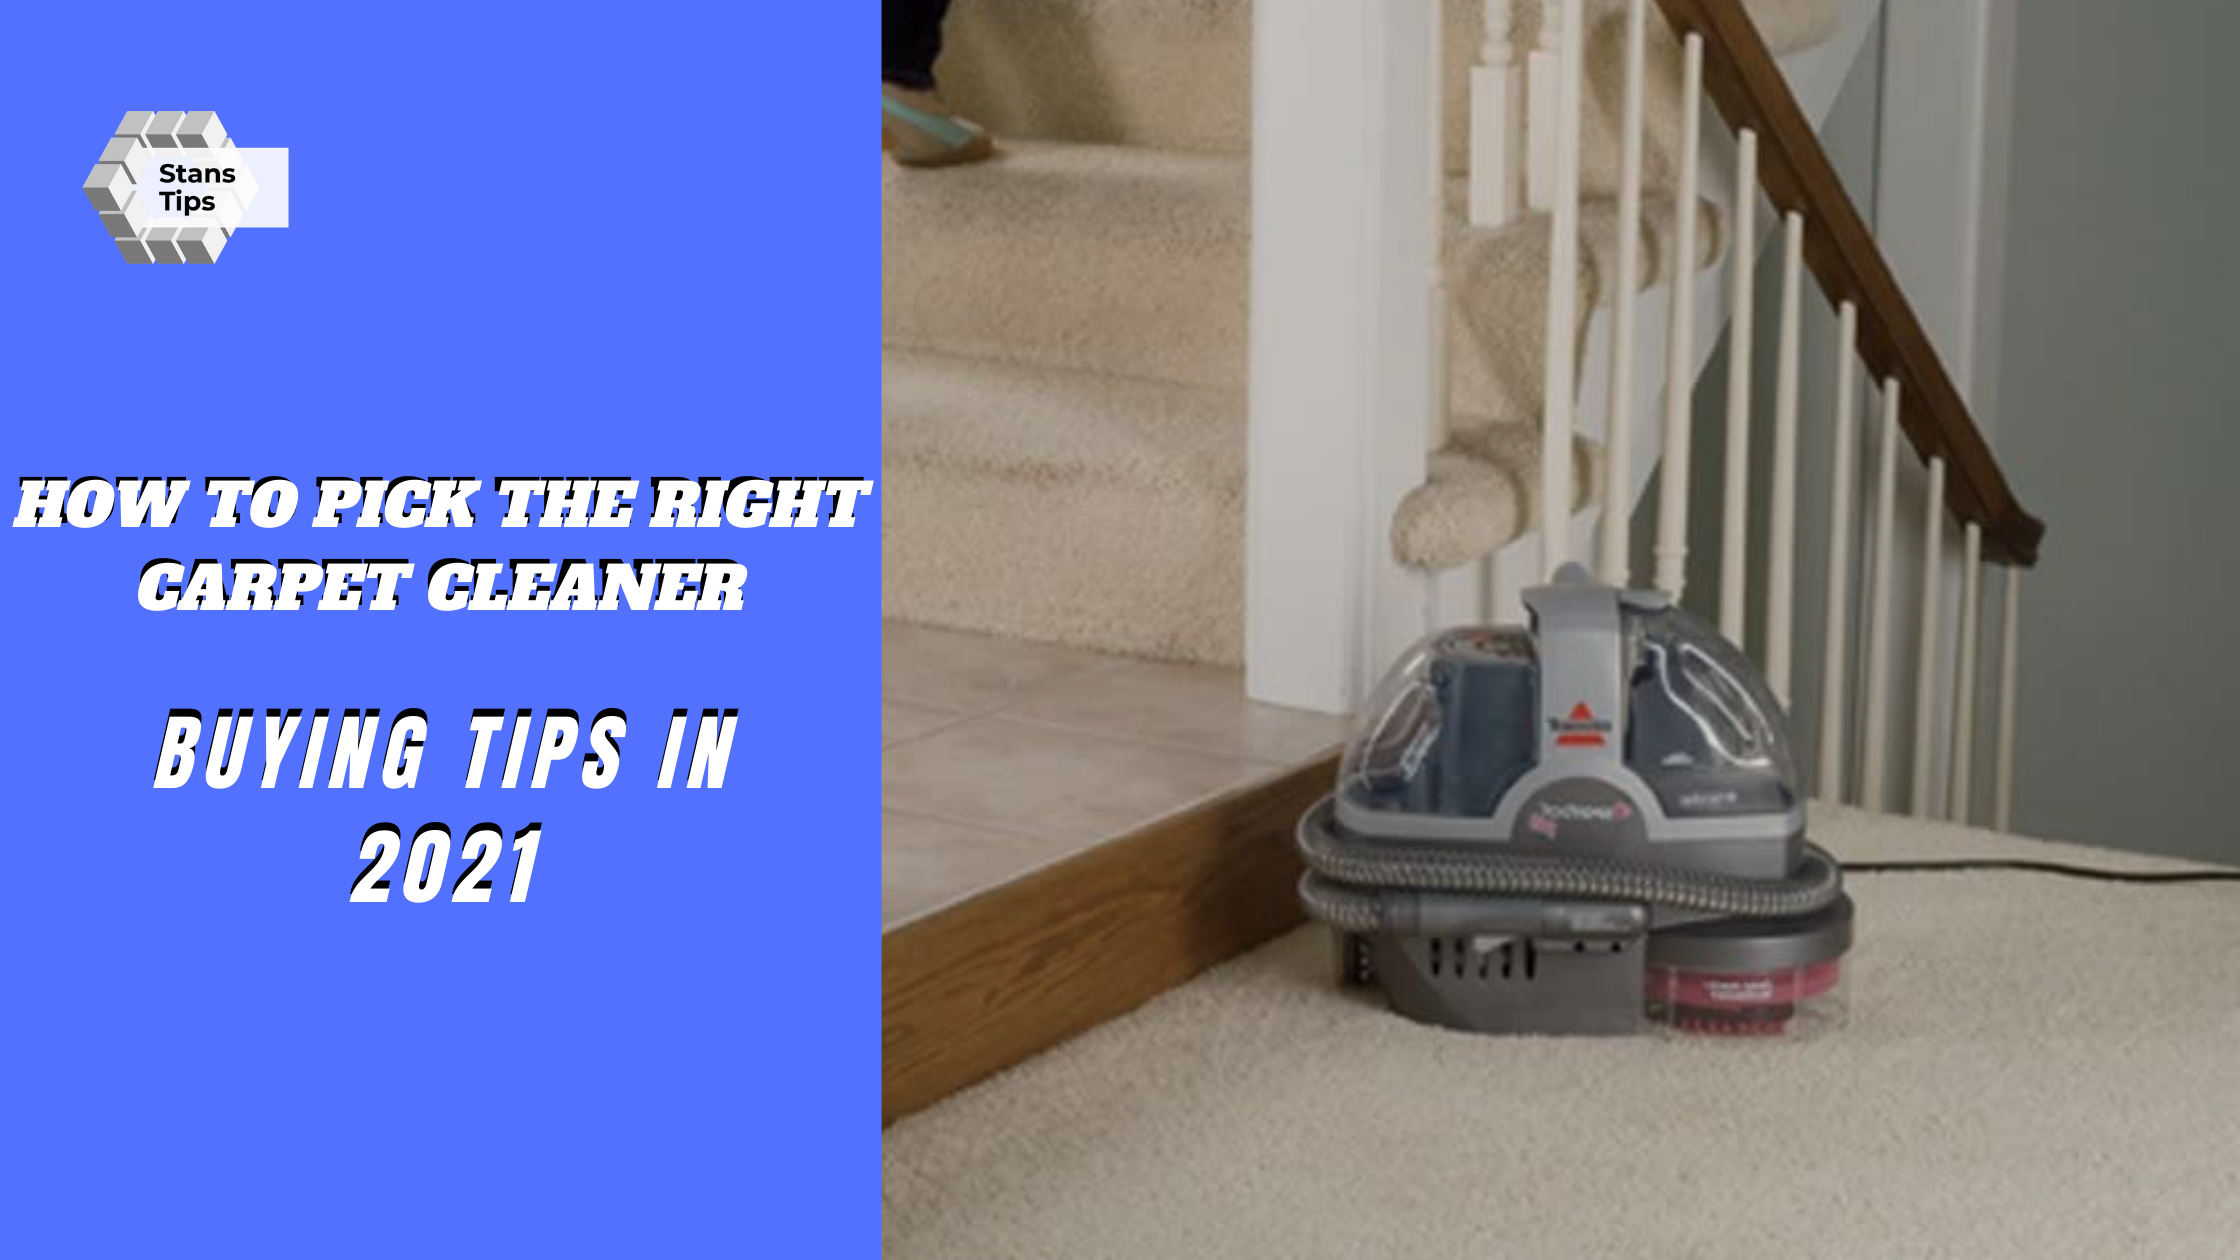 how to pick the right carpet cleaner in 2021